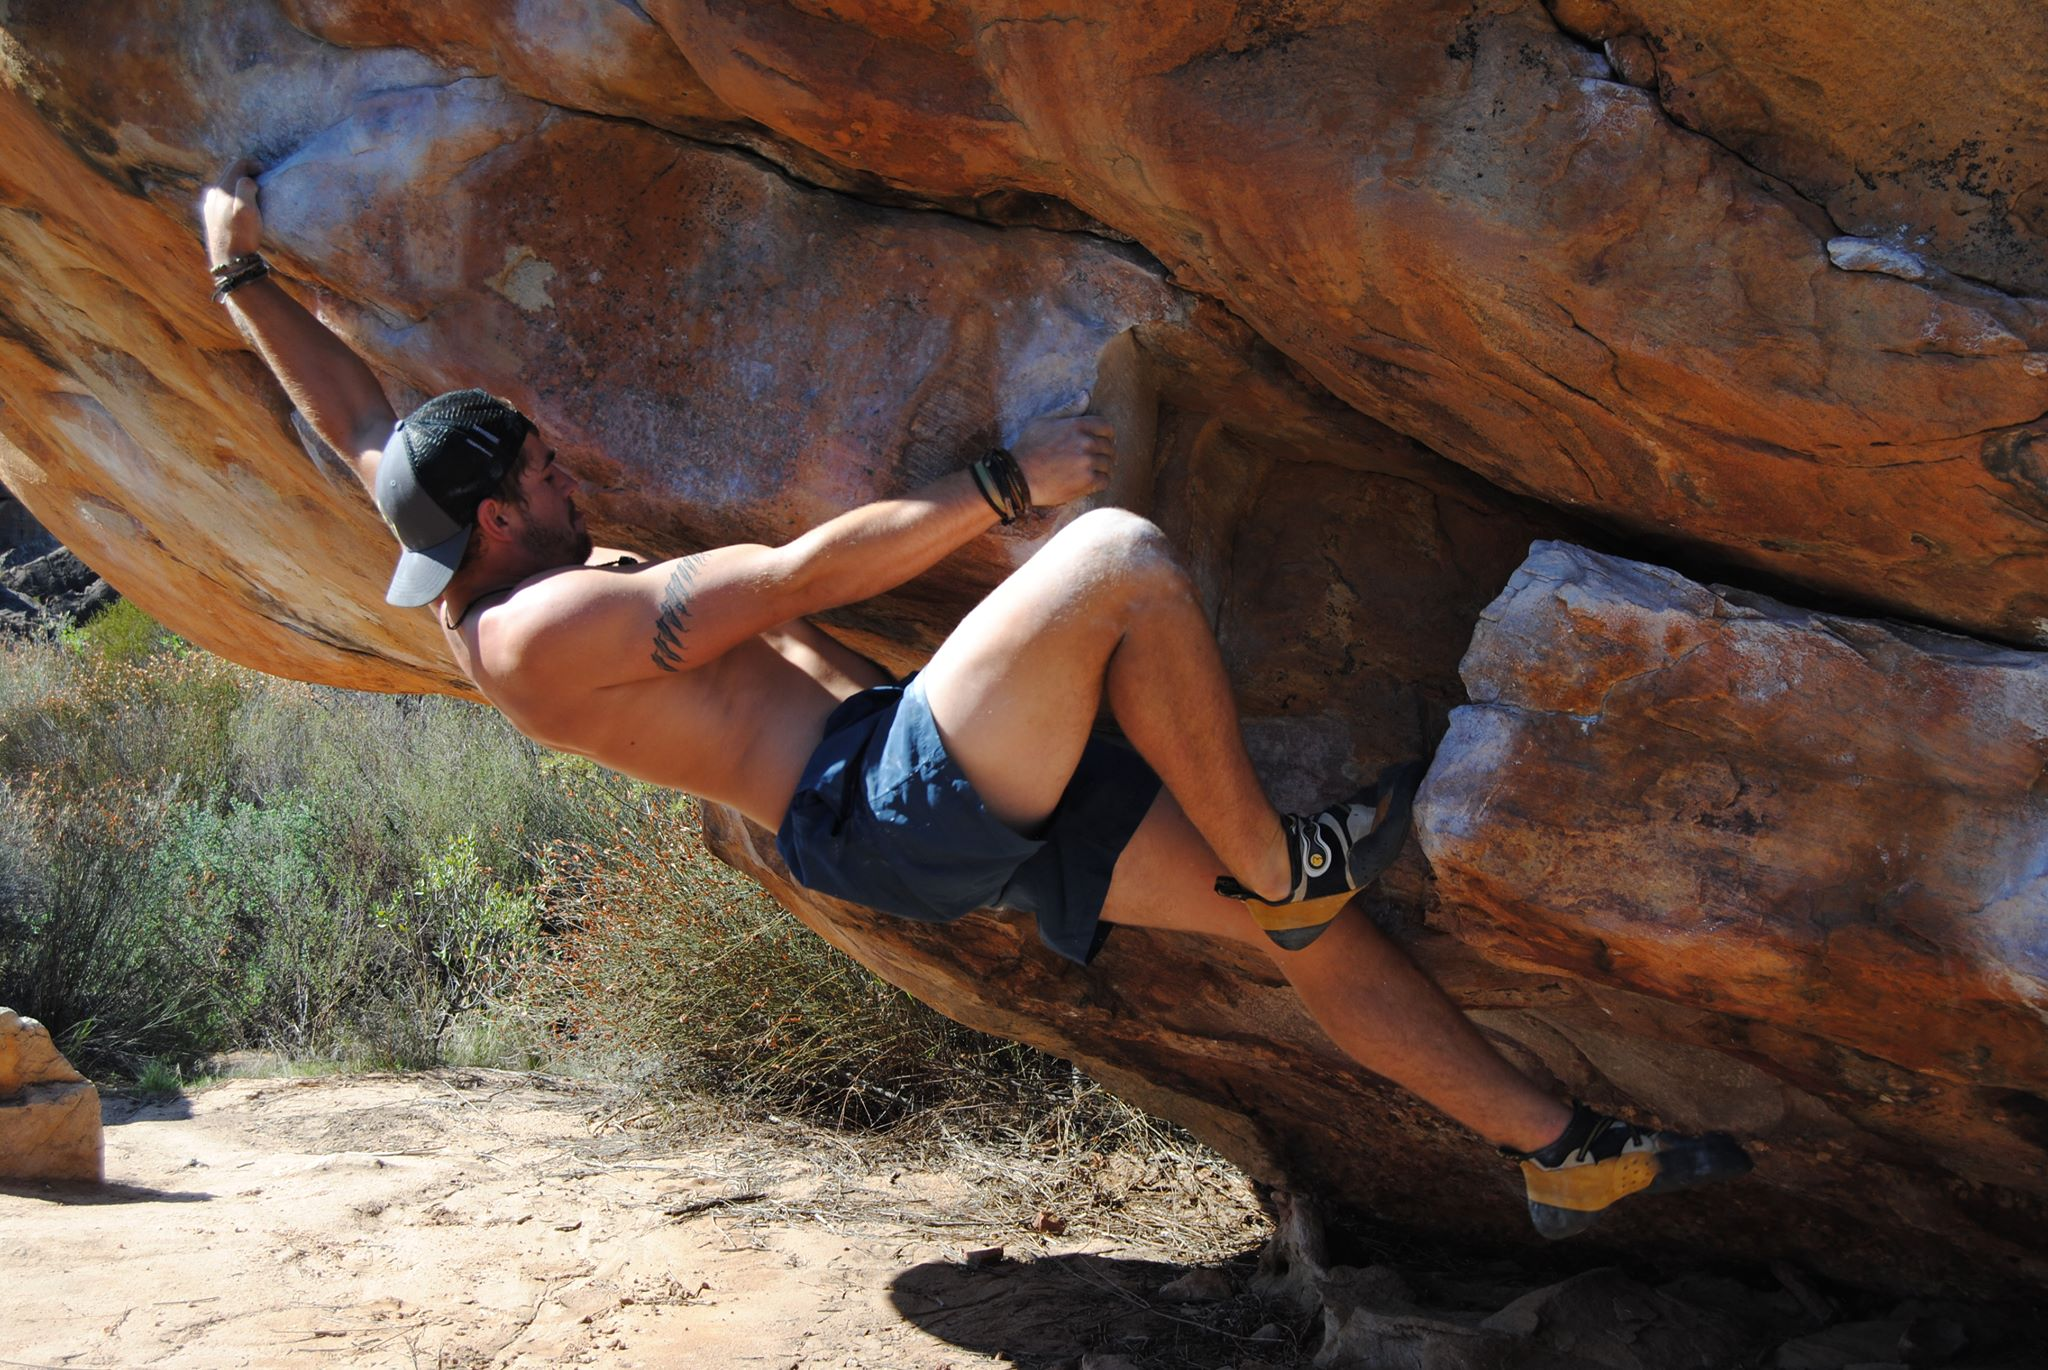 Luke Bax Climbing a nice boulder problem in Rocklands South Africa